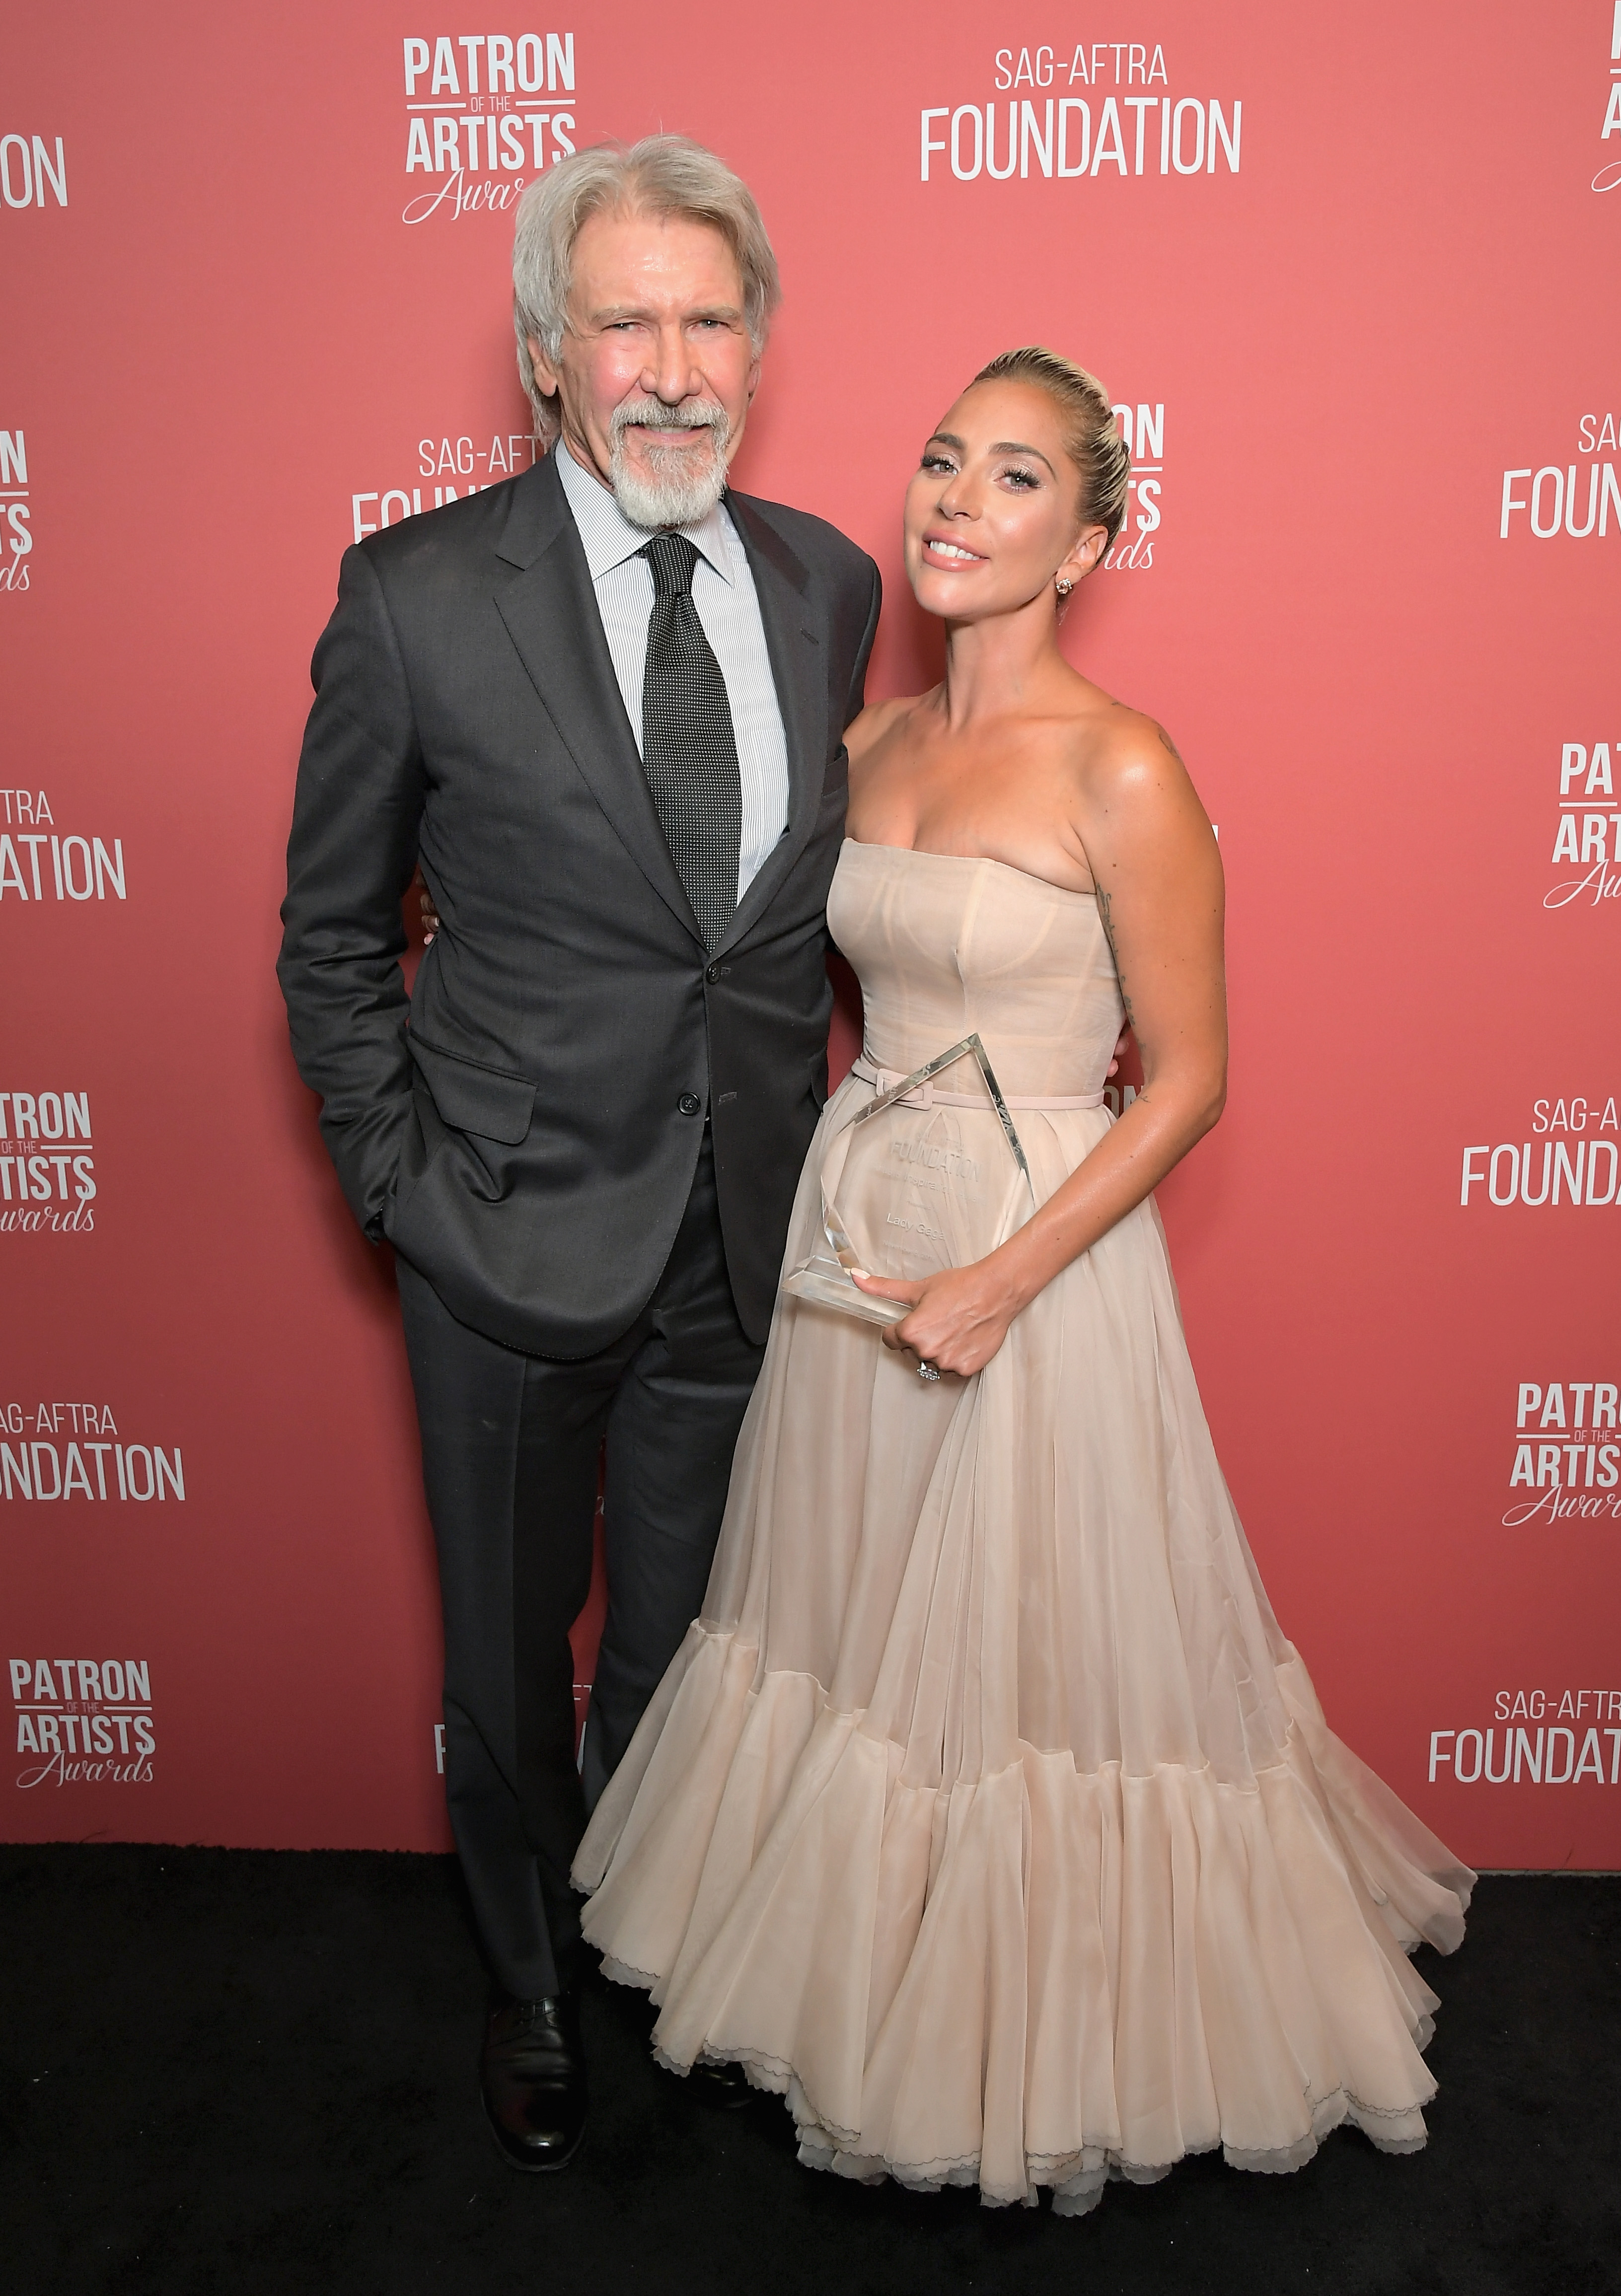 Artists Inspiration Award recipients Harrison Ford and Lady Gaga attend the SAG-AFTRA Foundation's 3rd Annual Patron of the Artists Awards at the Wallis Annenberg Center for the Performing Arts on November 8, 2018 in Beverly Hills, California.